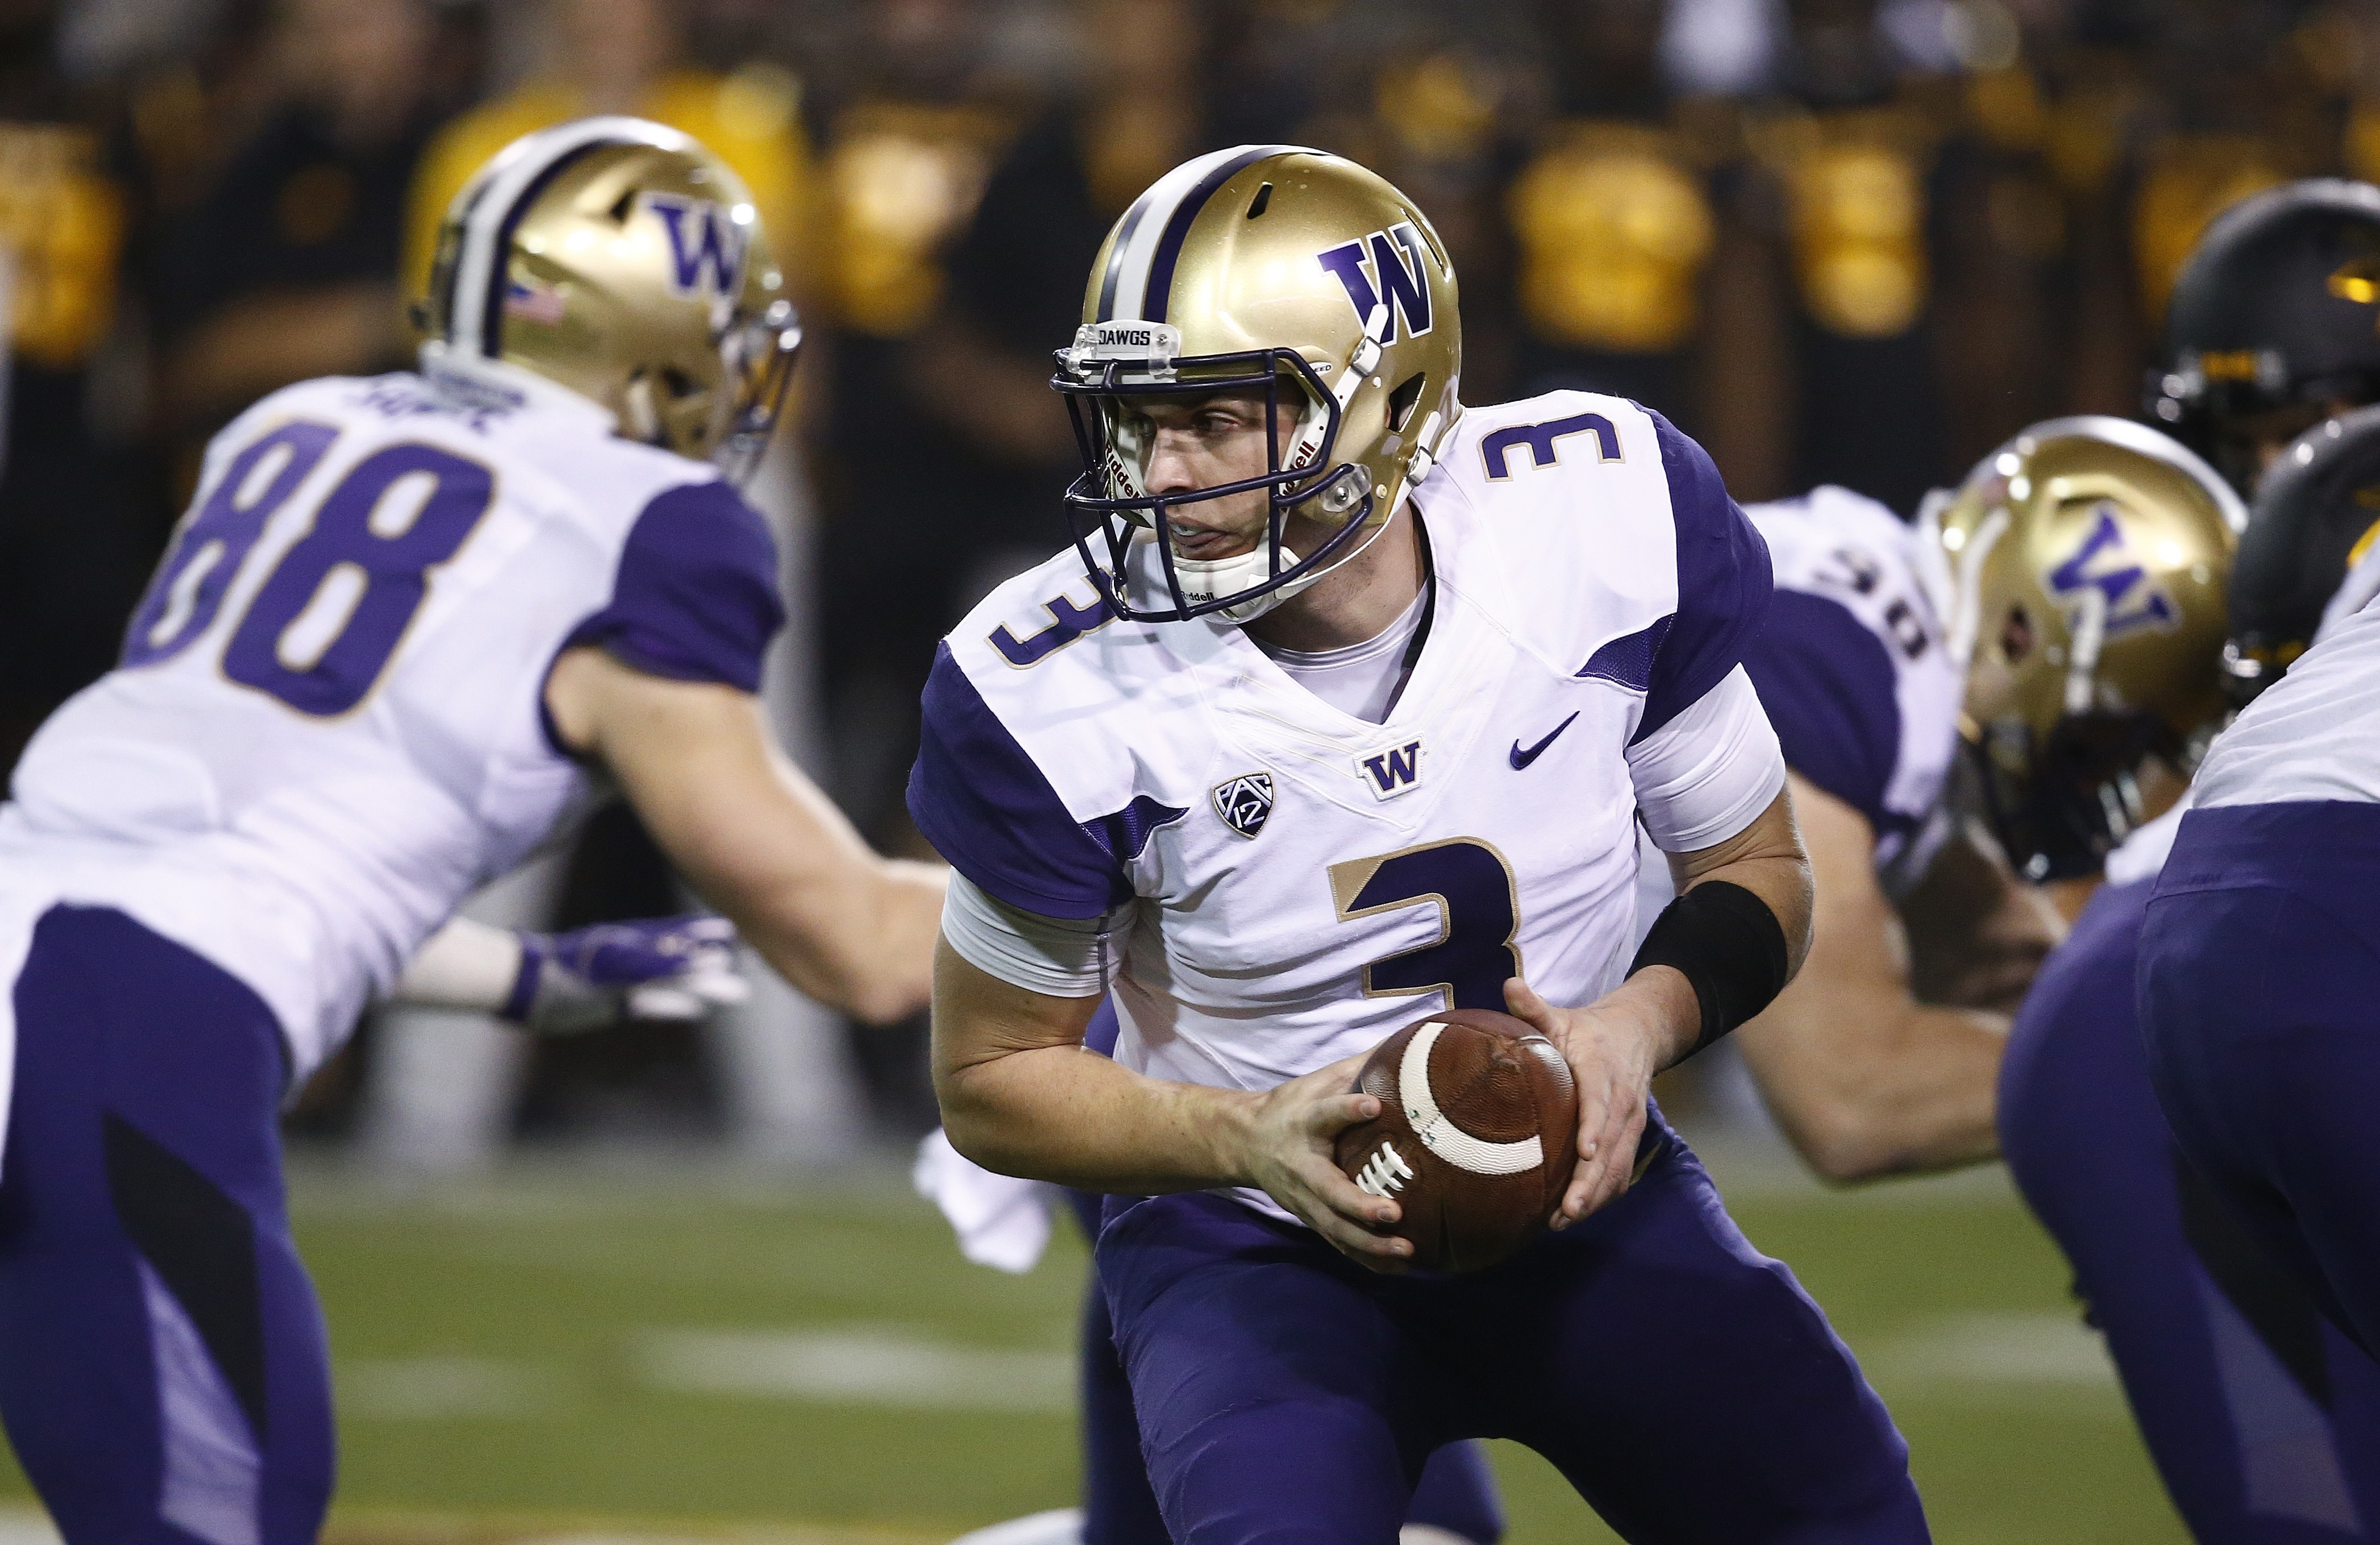 Washington quarterback Jake Browning (3) looks to hand the ball off during the first half of an NCAA college football game against Arizona State on Saturday, Oct. 14, 2017, in Tempe, Ariz. (AP Photo/Ross D. Franklin)